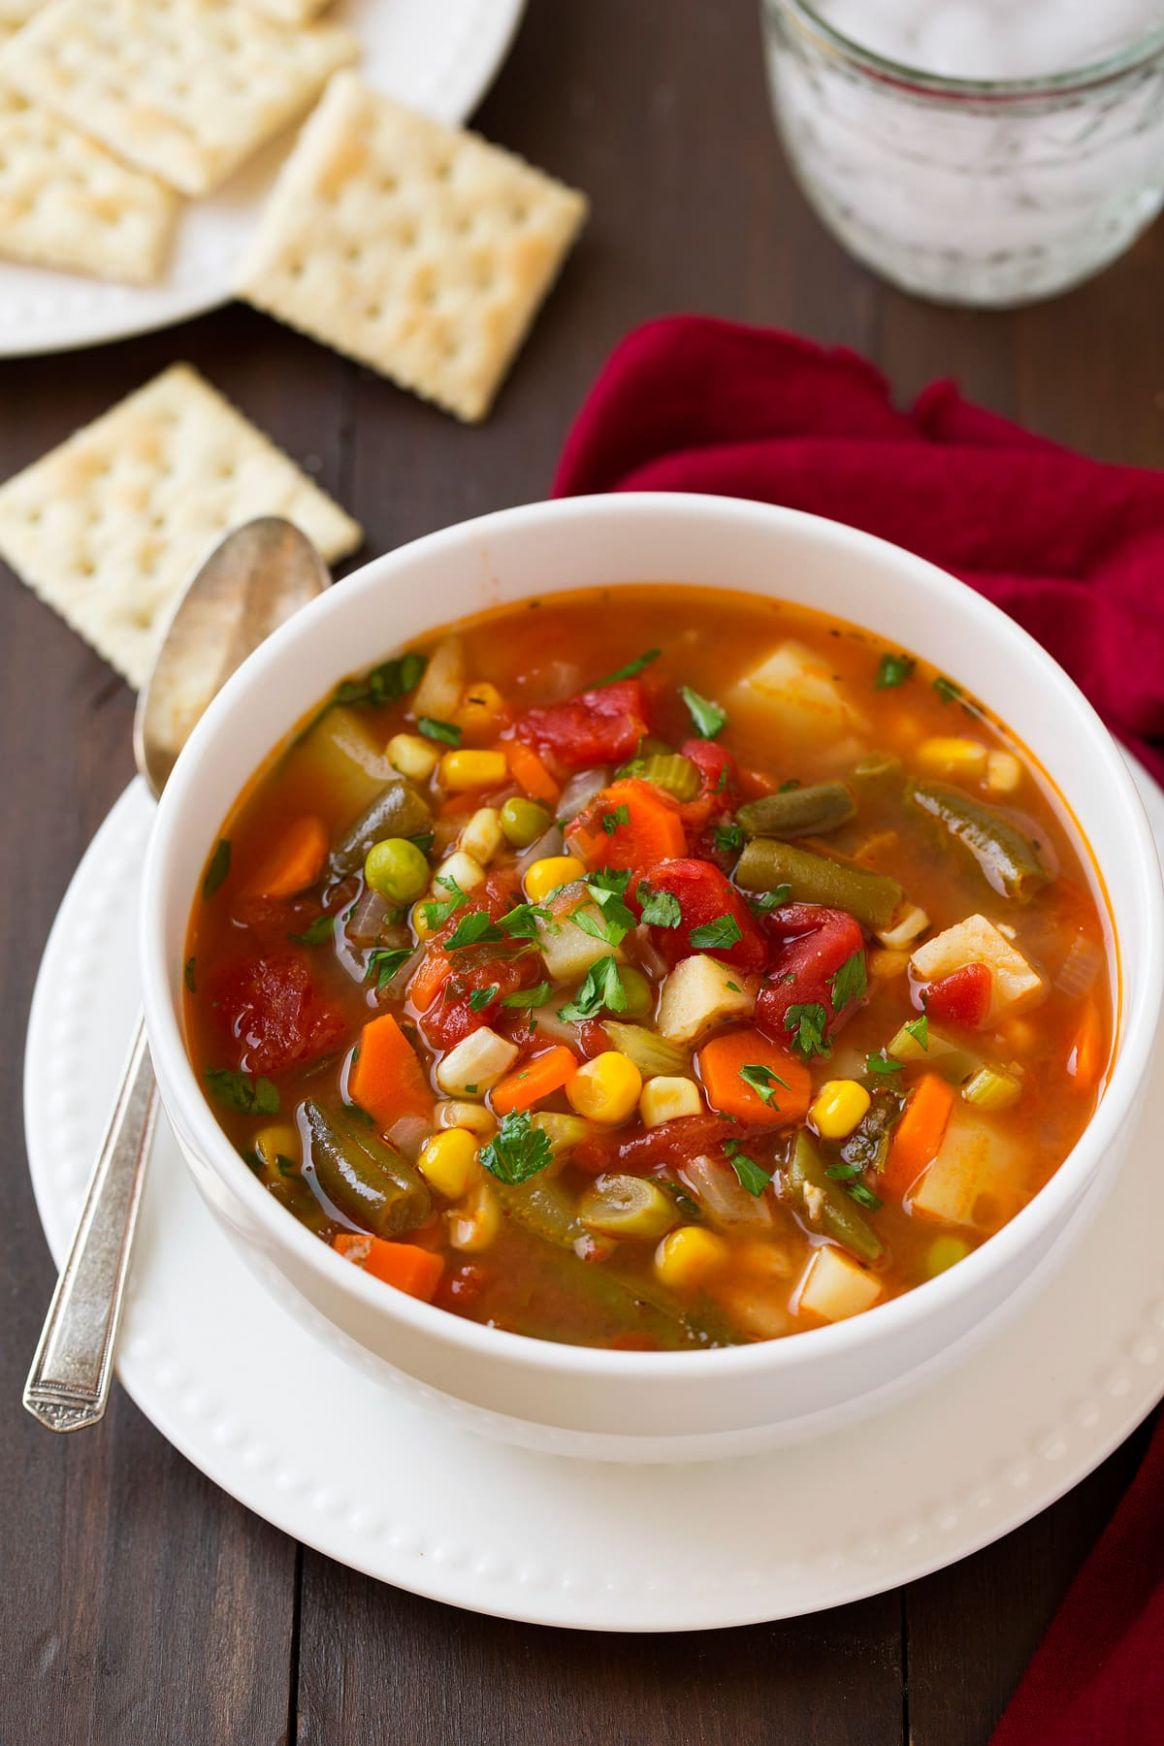 Vegetable Soup - Recipes Using Vegetable Broth